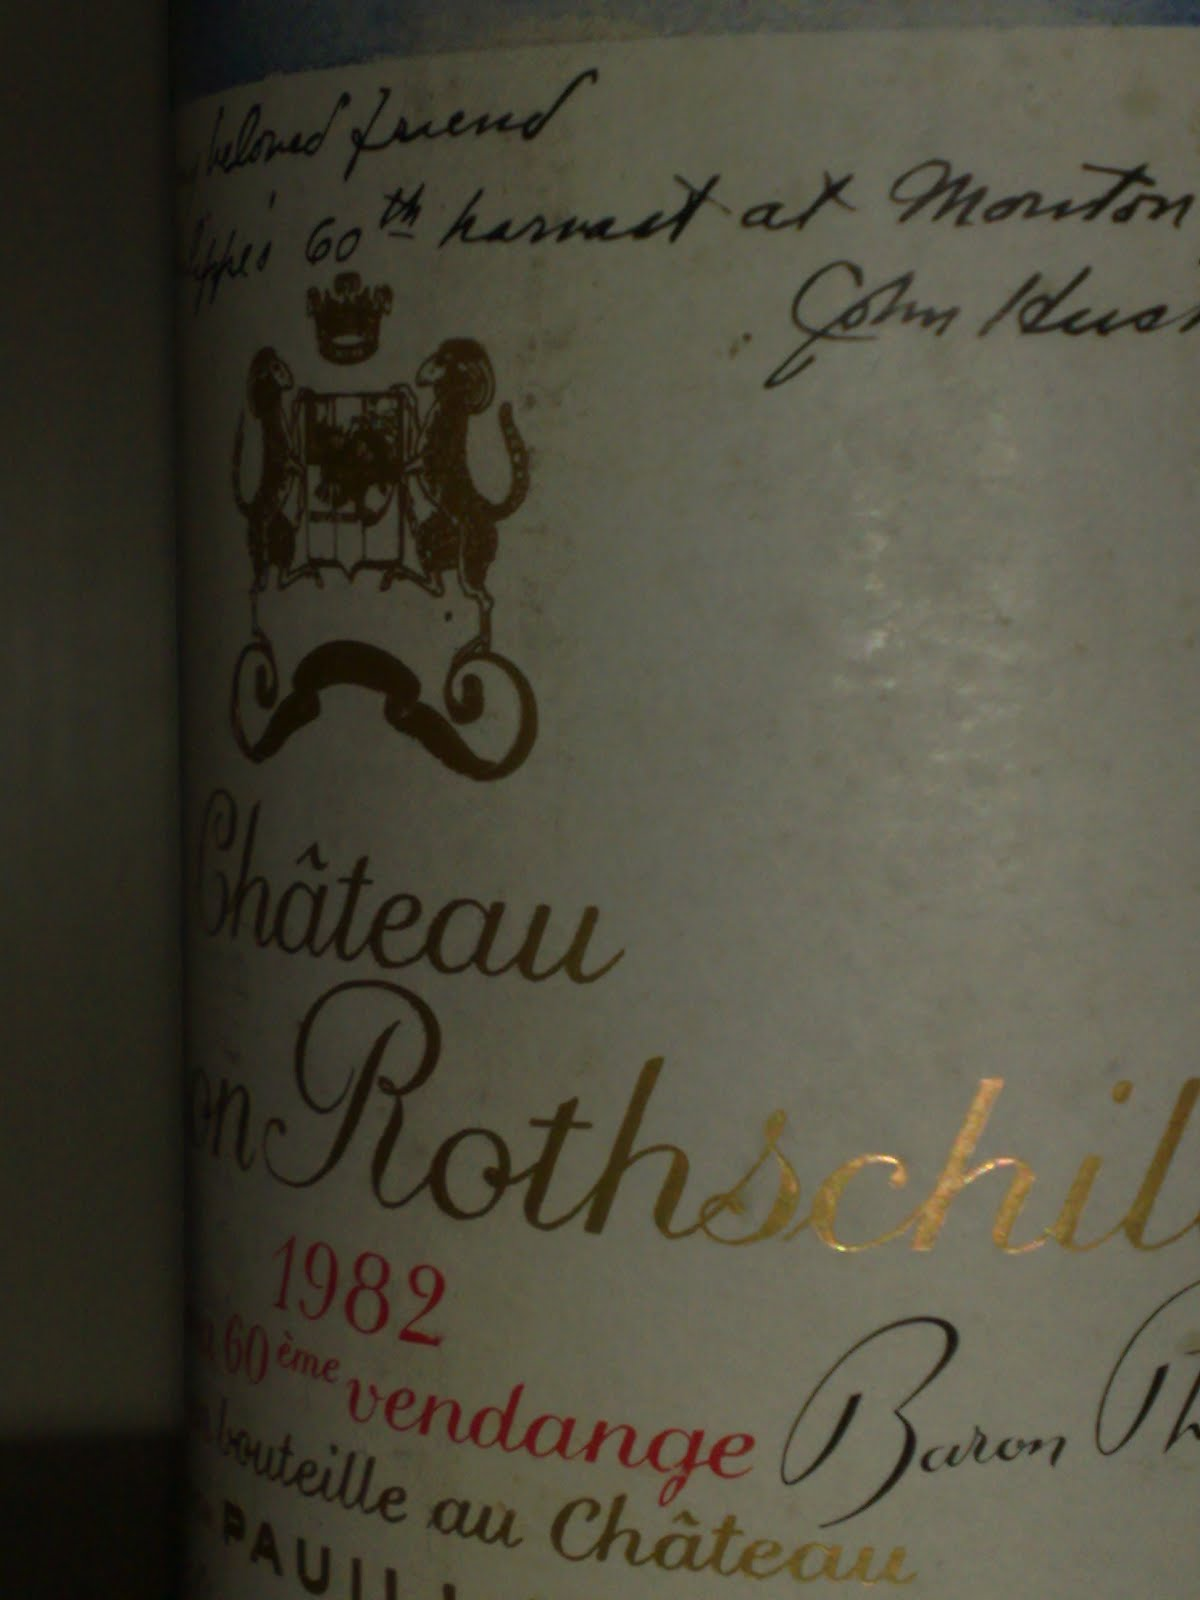 1982 Chteau Mouton Rothschild Ruby Garnet Rim Im Not Sure If Its The Day Root Or Fruit Whatever But Every Bottle Other Than Chablis Seems